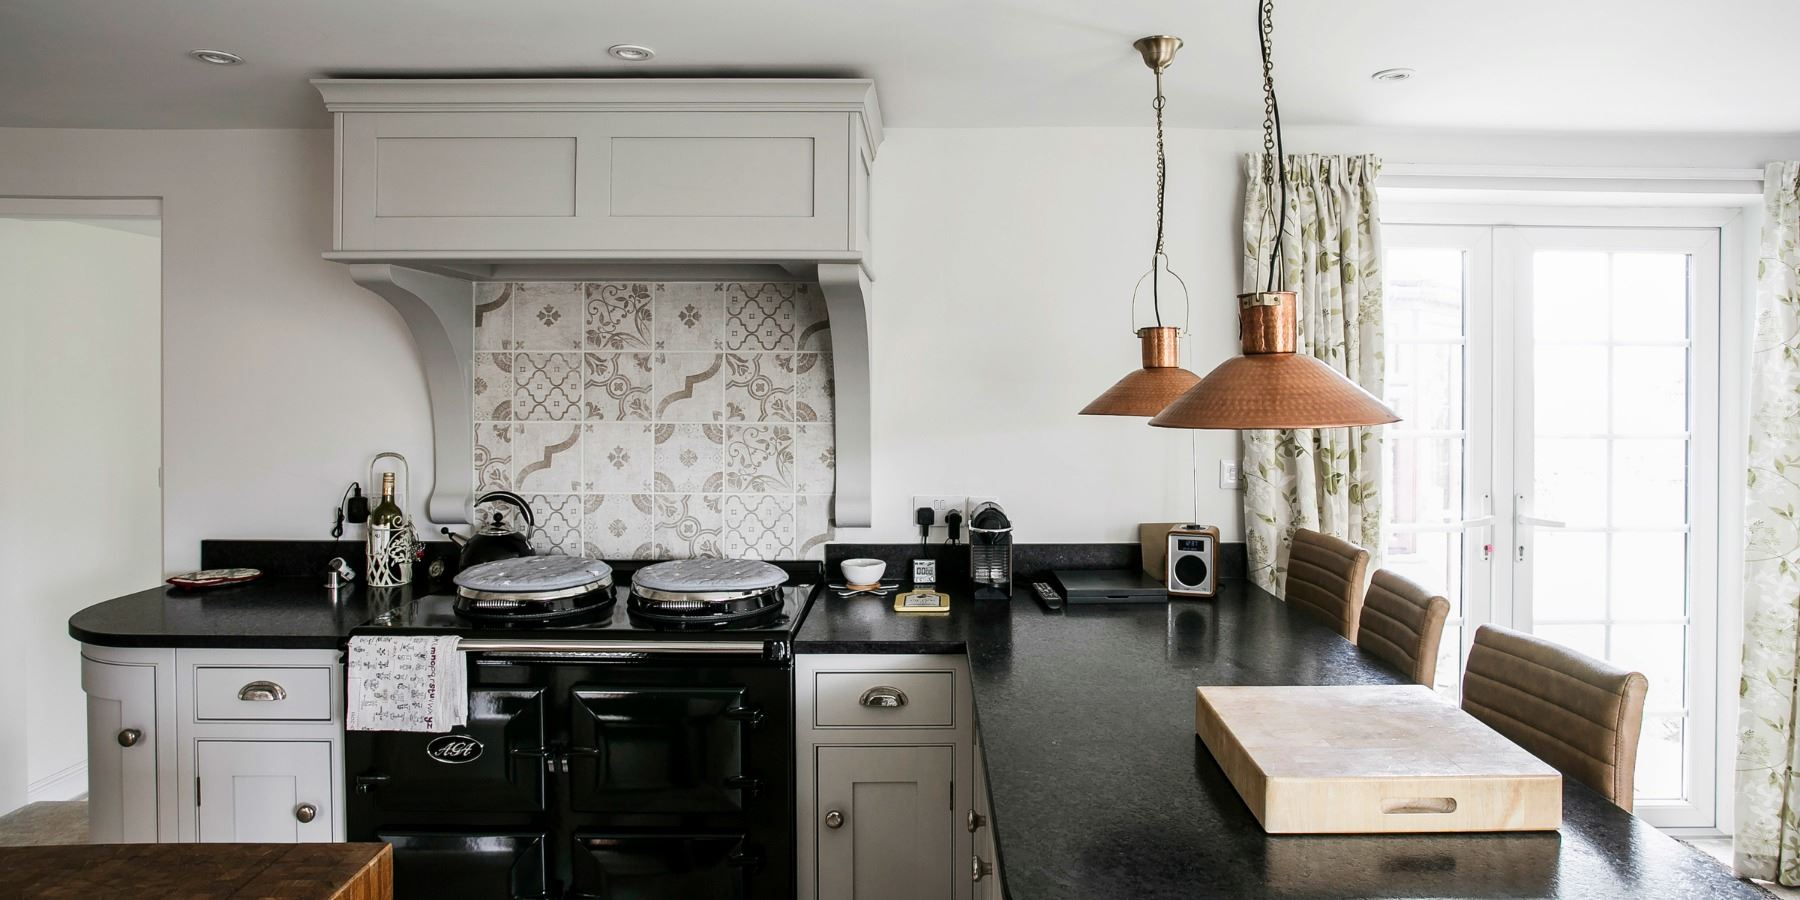 Burlanes Interiors - The perfect country cottage kitchen